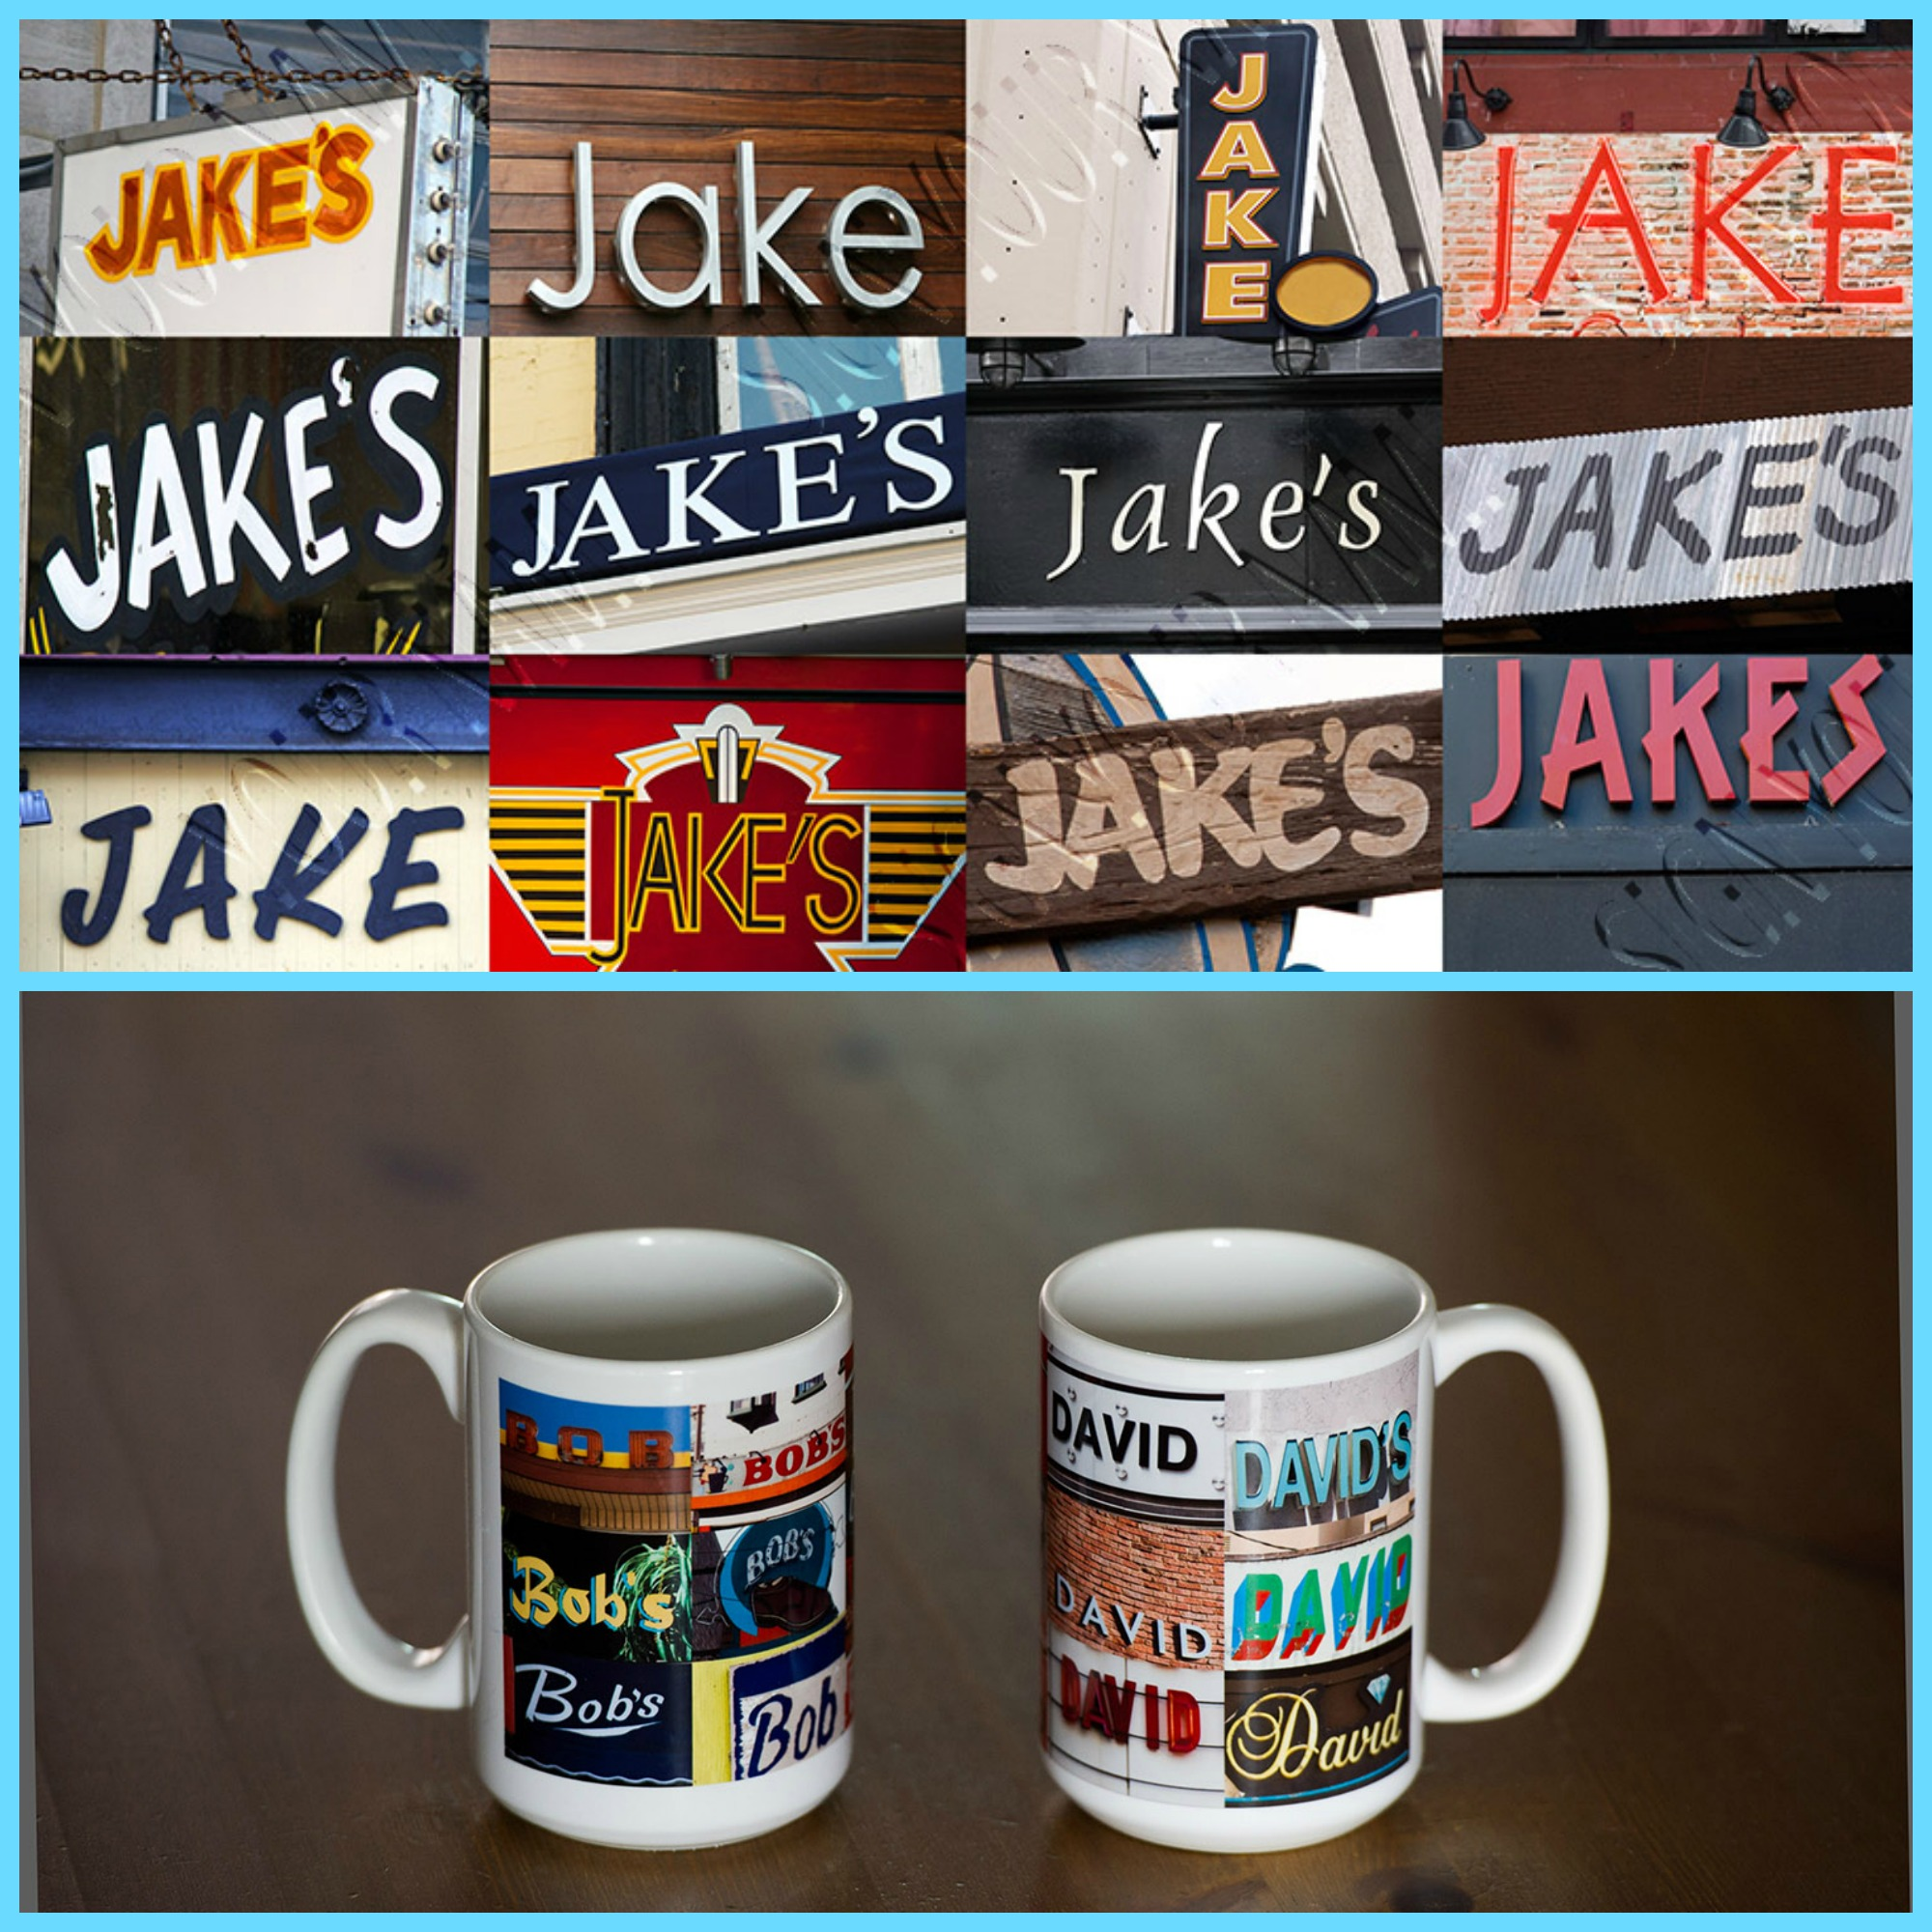 https://www.etsy.com/listing/218816263/personalized-coffee-mug-featuring-the?ref=shop_home_active_1&ga_search_query=jake